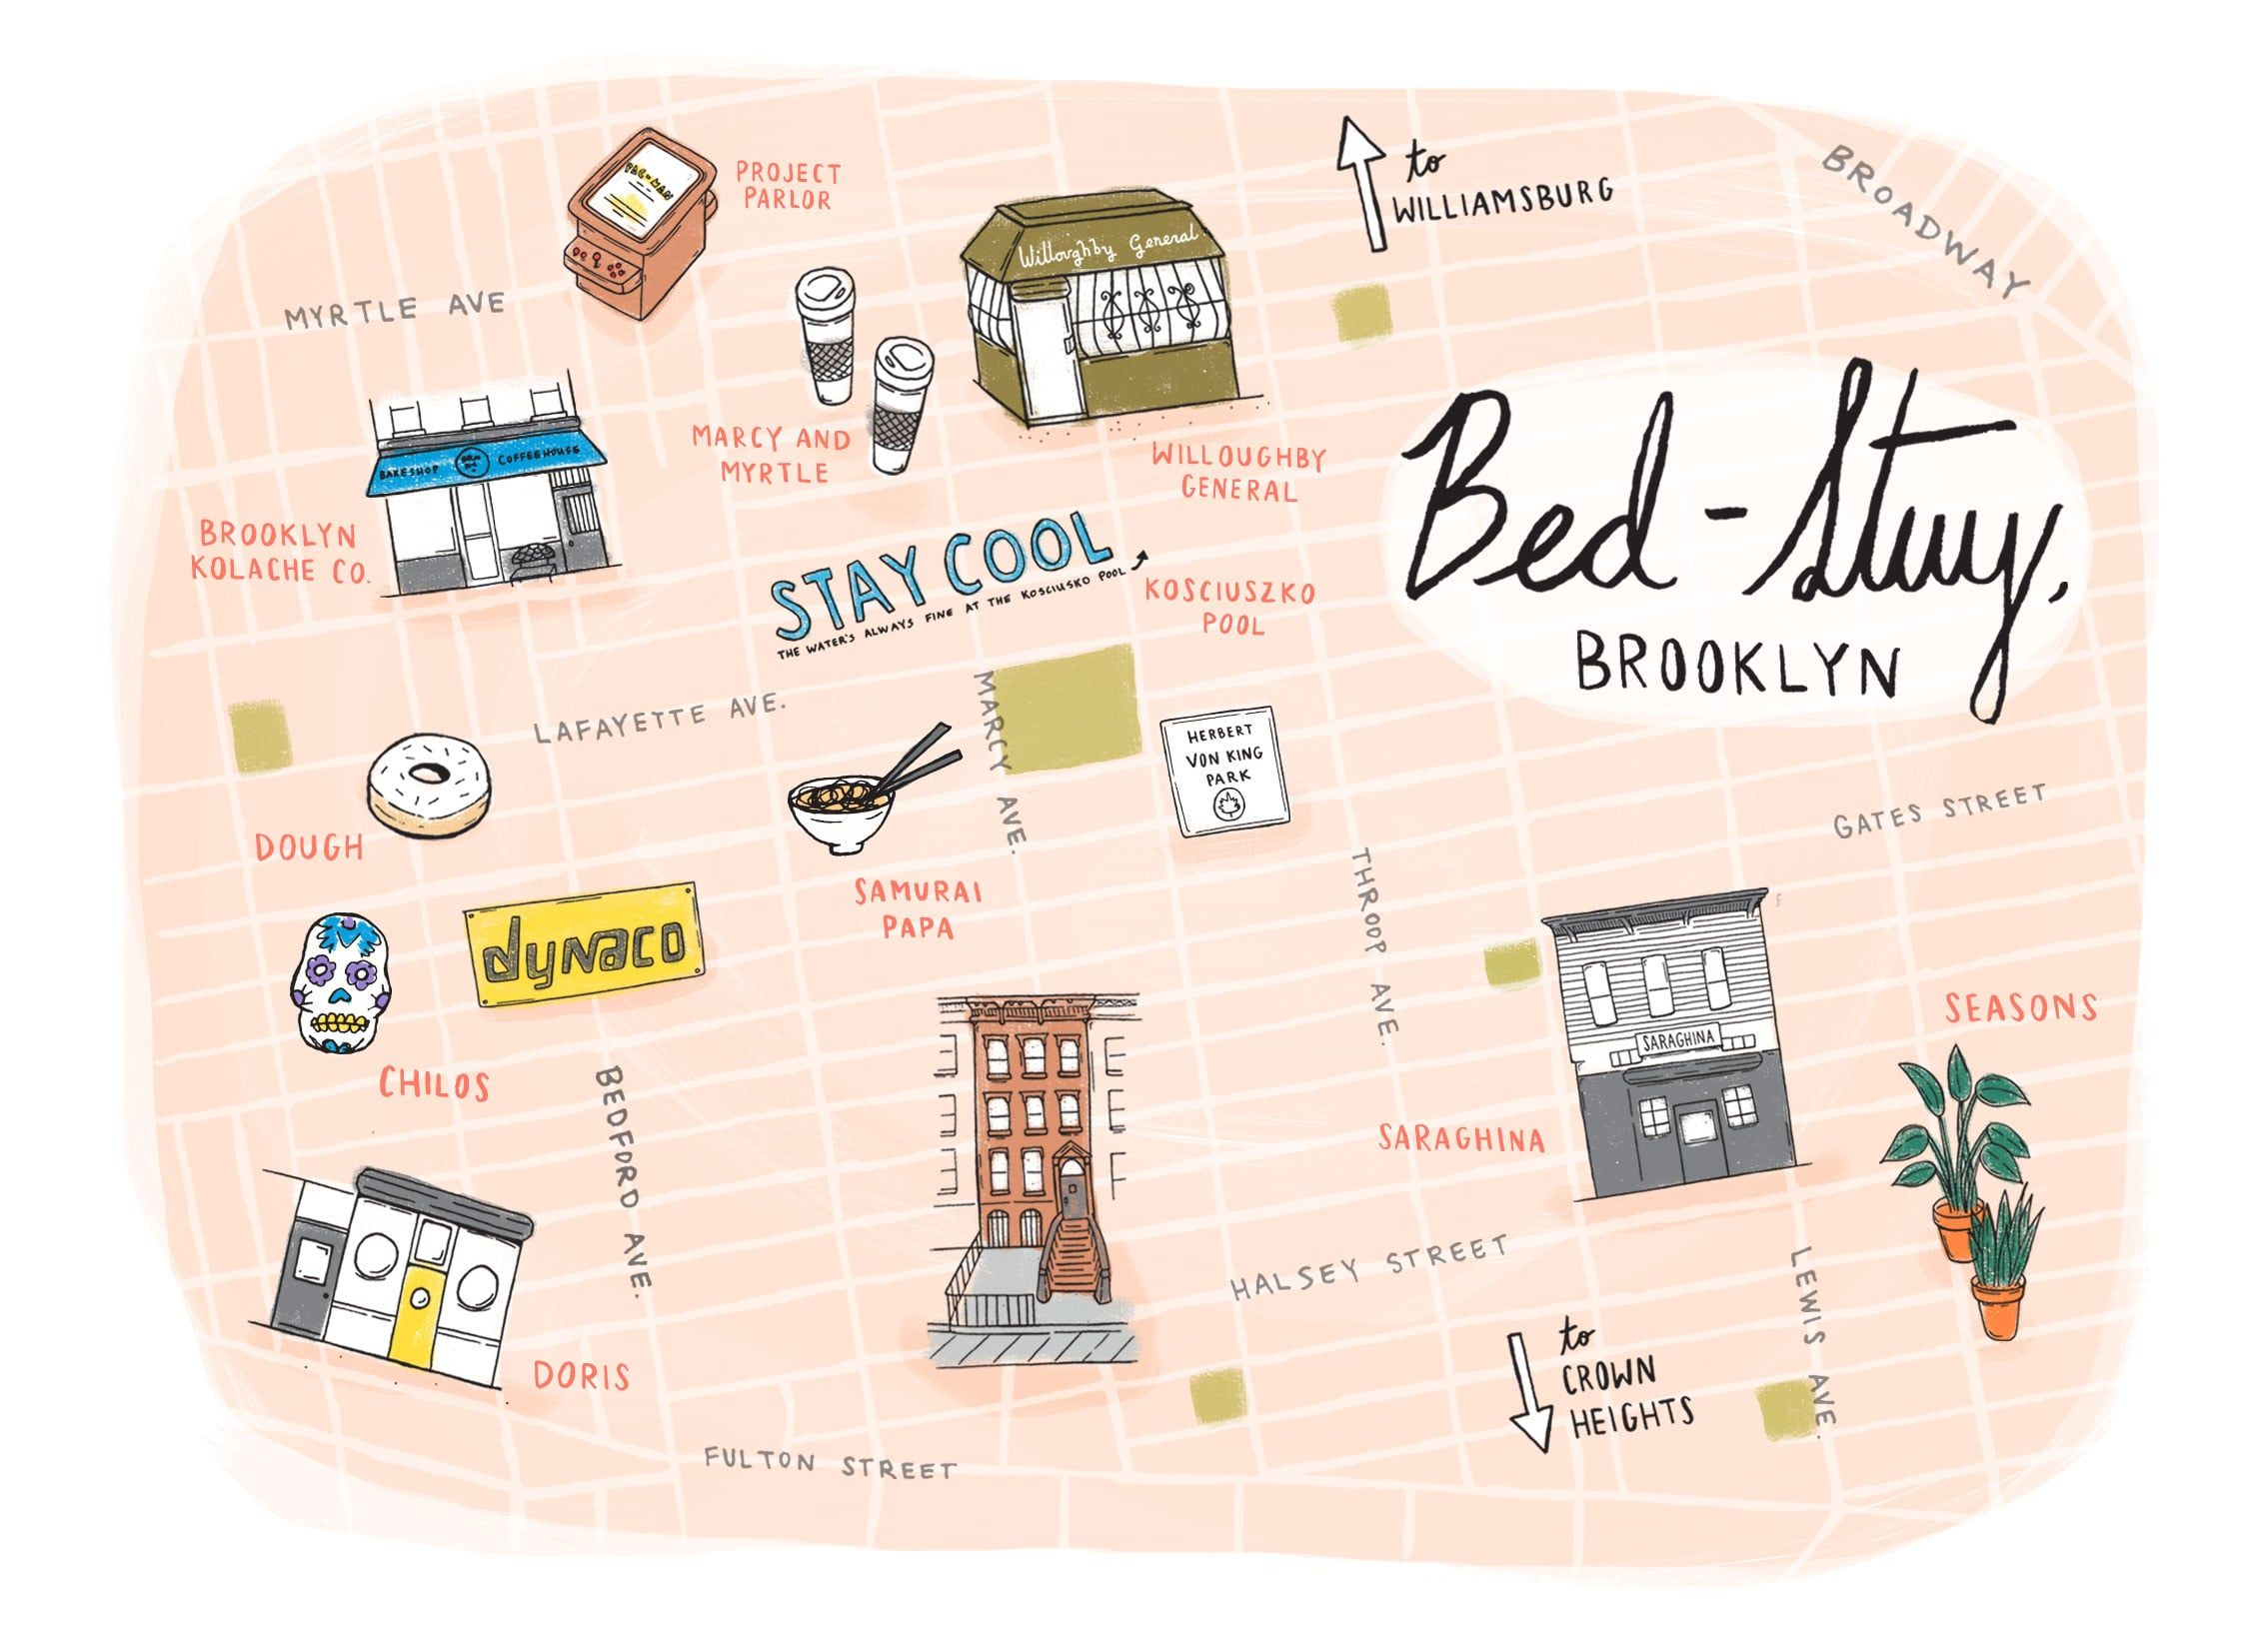 Bed Stuy Map Map of Bed Stuy, Brooklyn by Sunny Eckerle   SUNNY ECKERLE